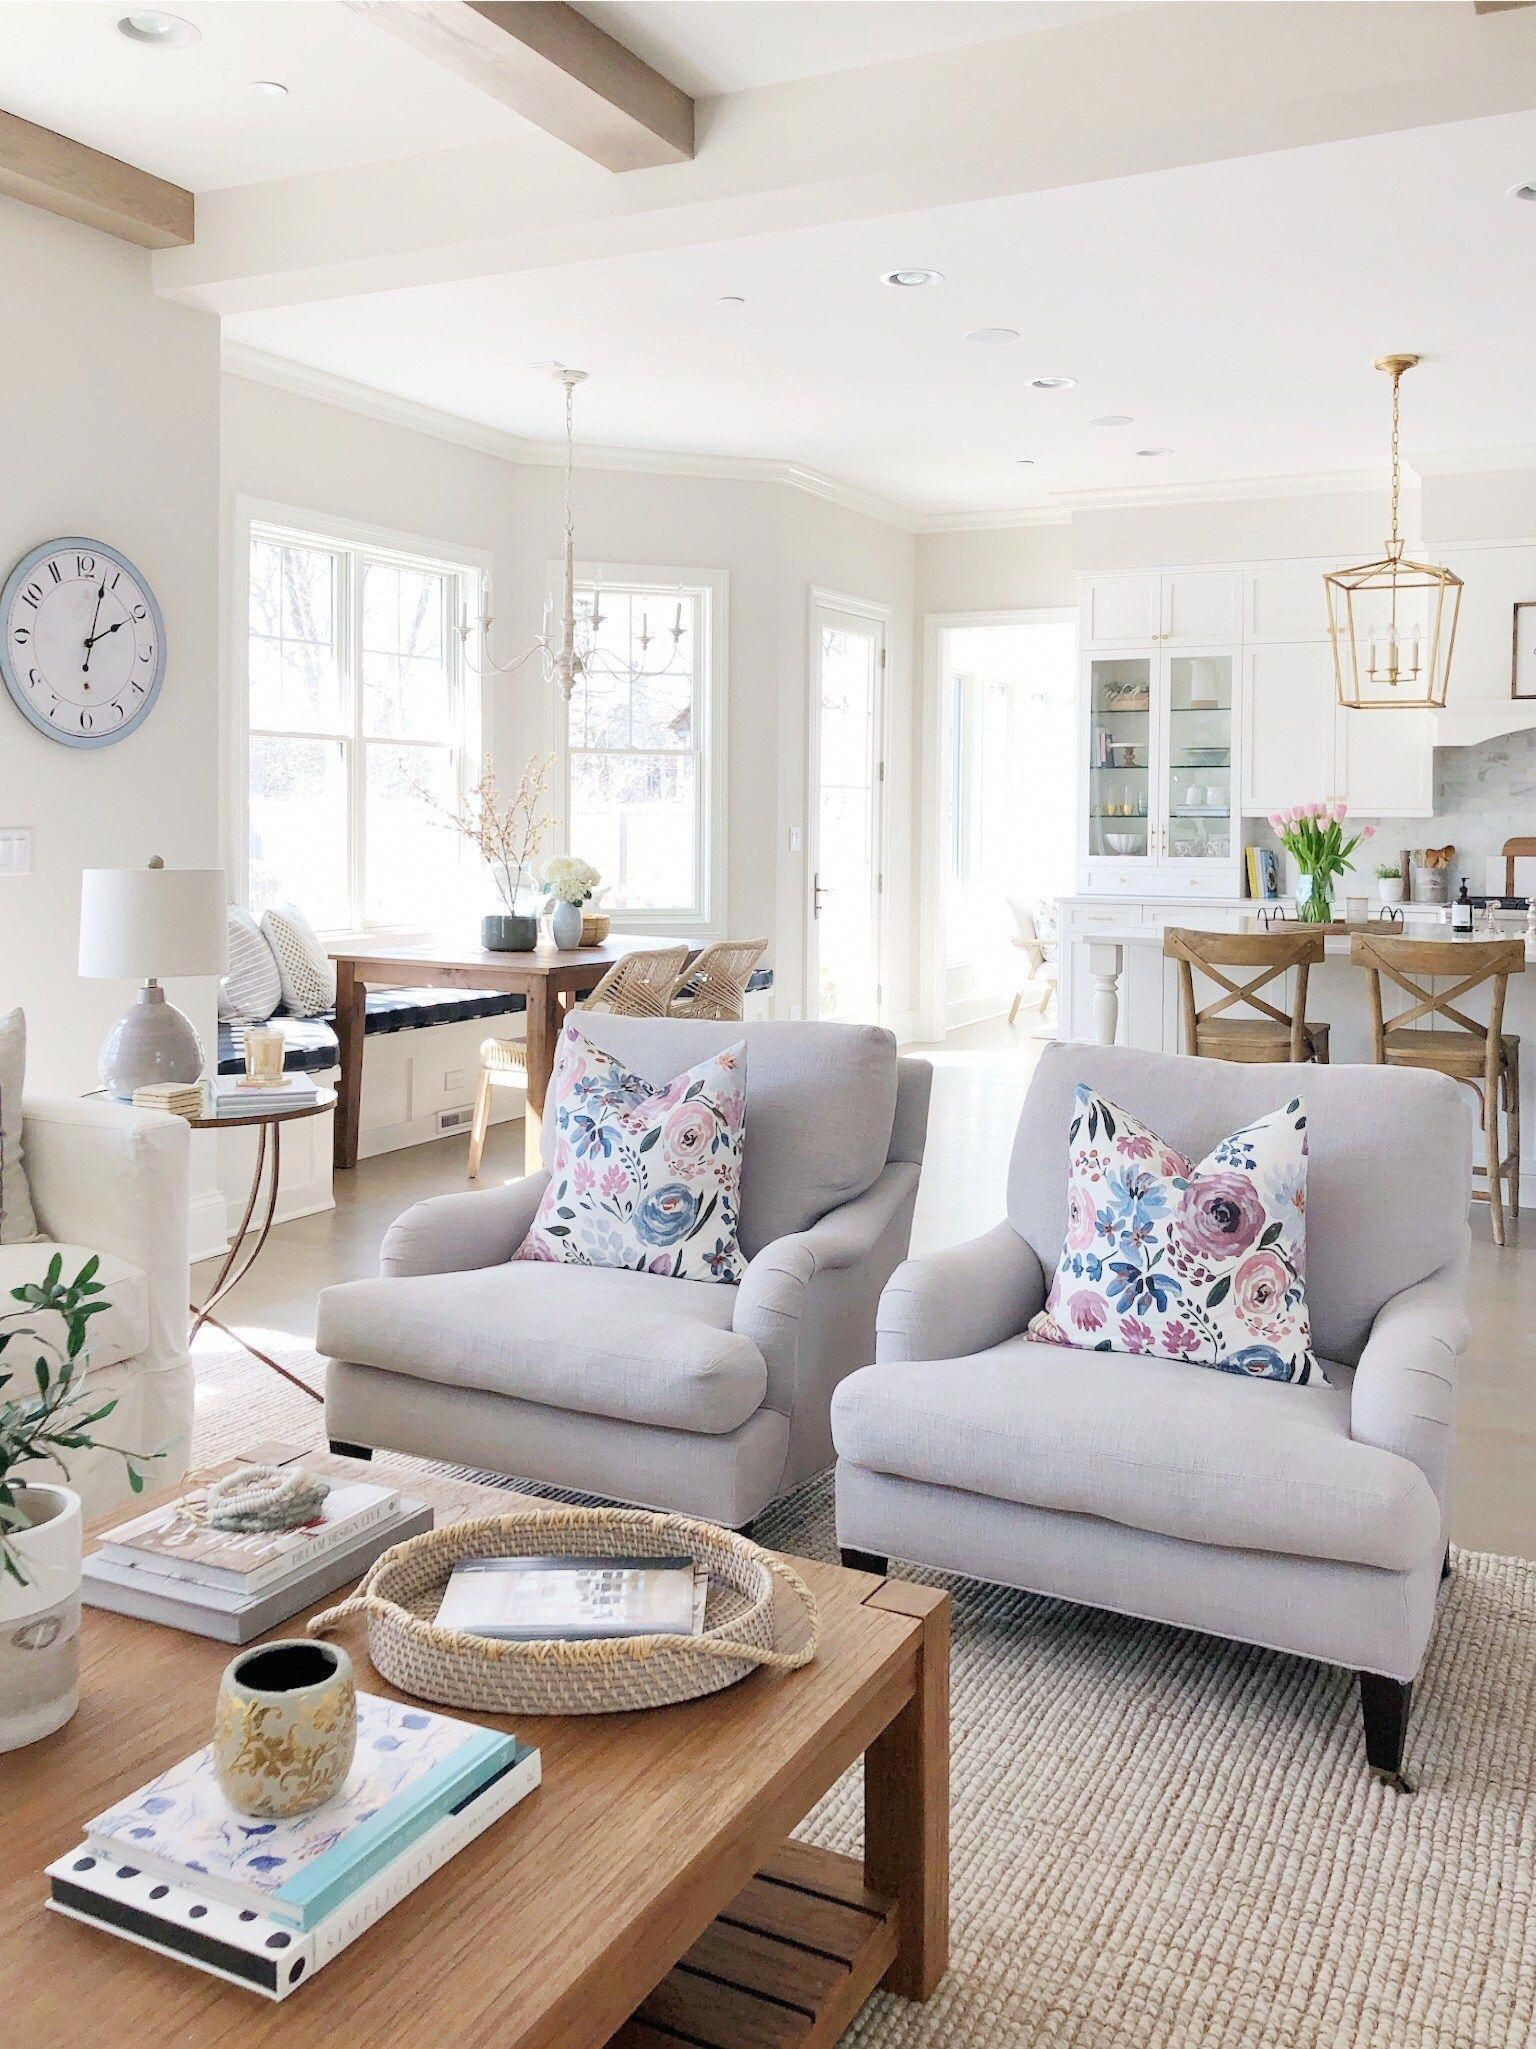 Home Interior Design Game Online: This Unique Thing Is An Unquestionably Inspirational And